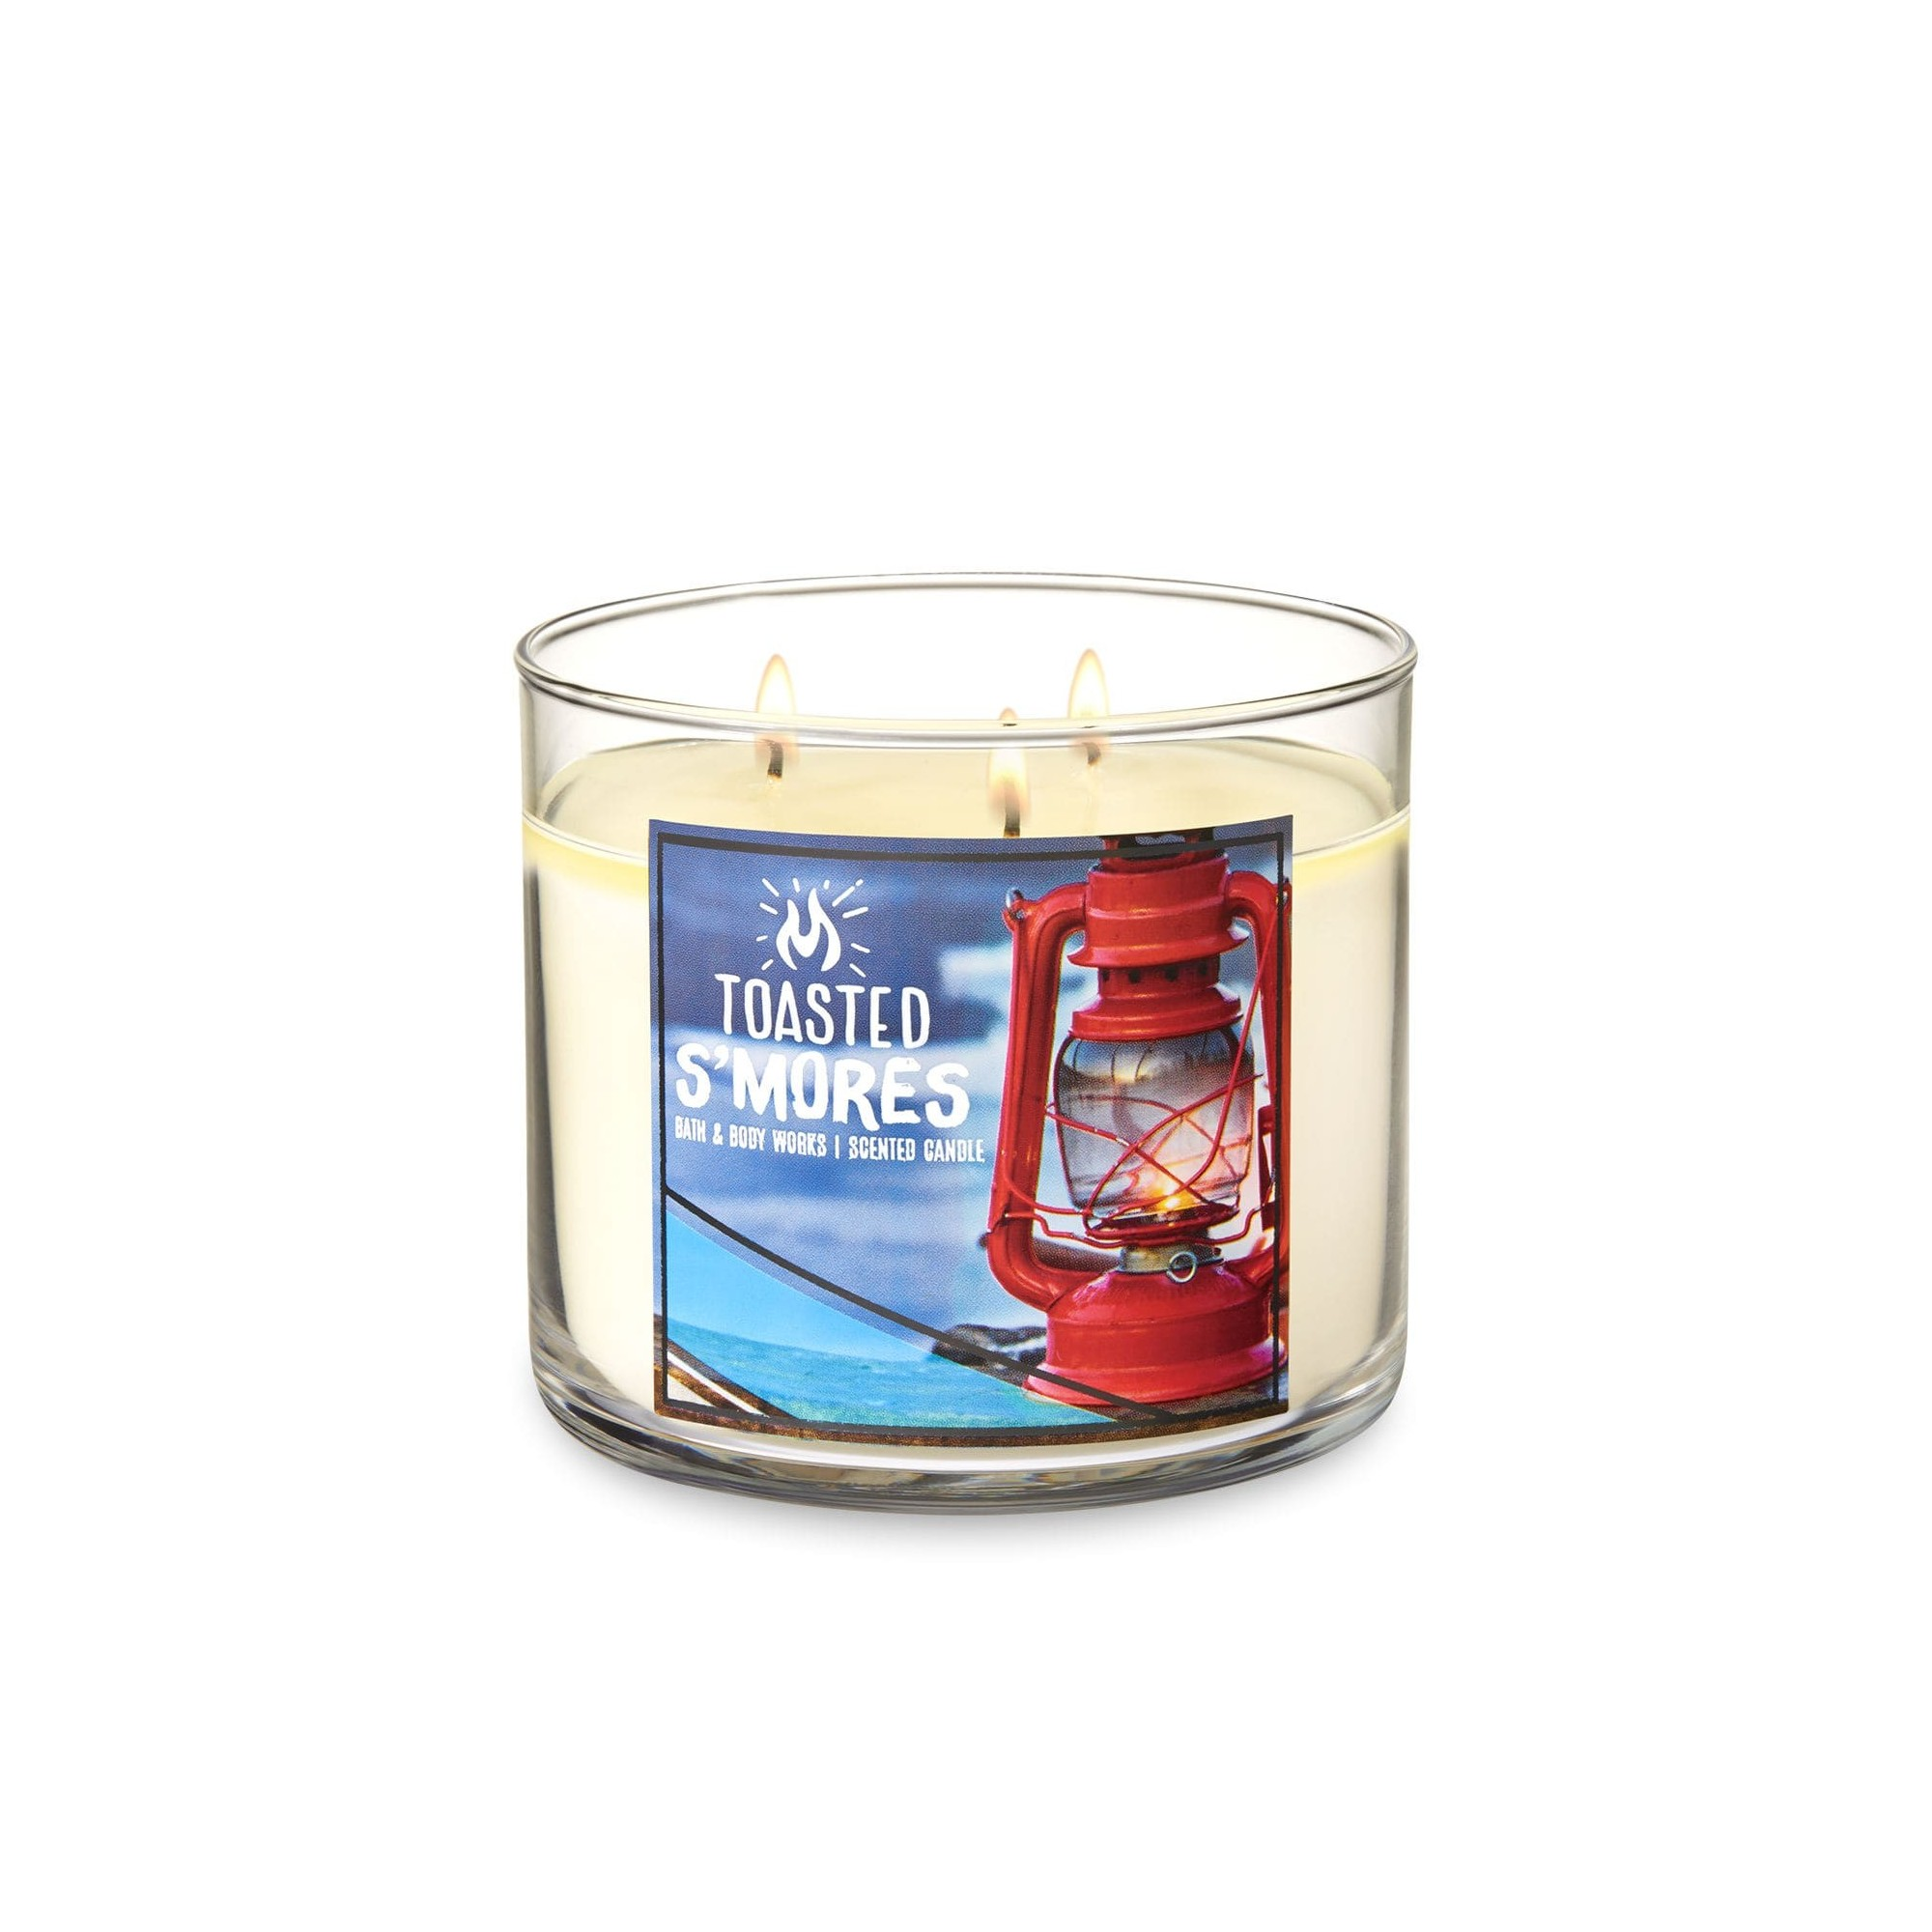 Bath & Body Works Toasted S'Mores 3 Wick Scented Candle